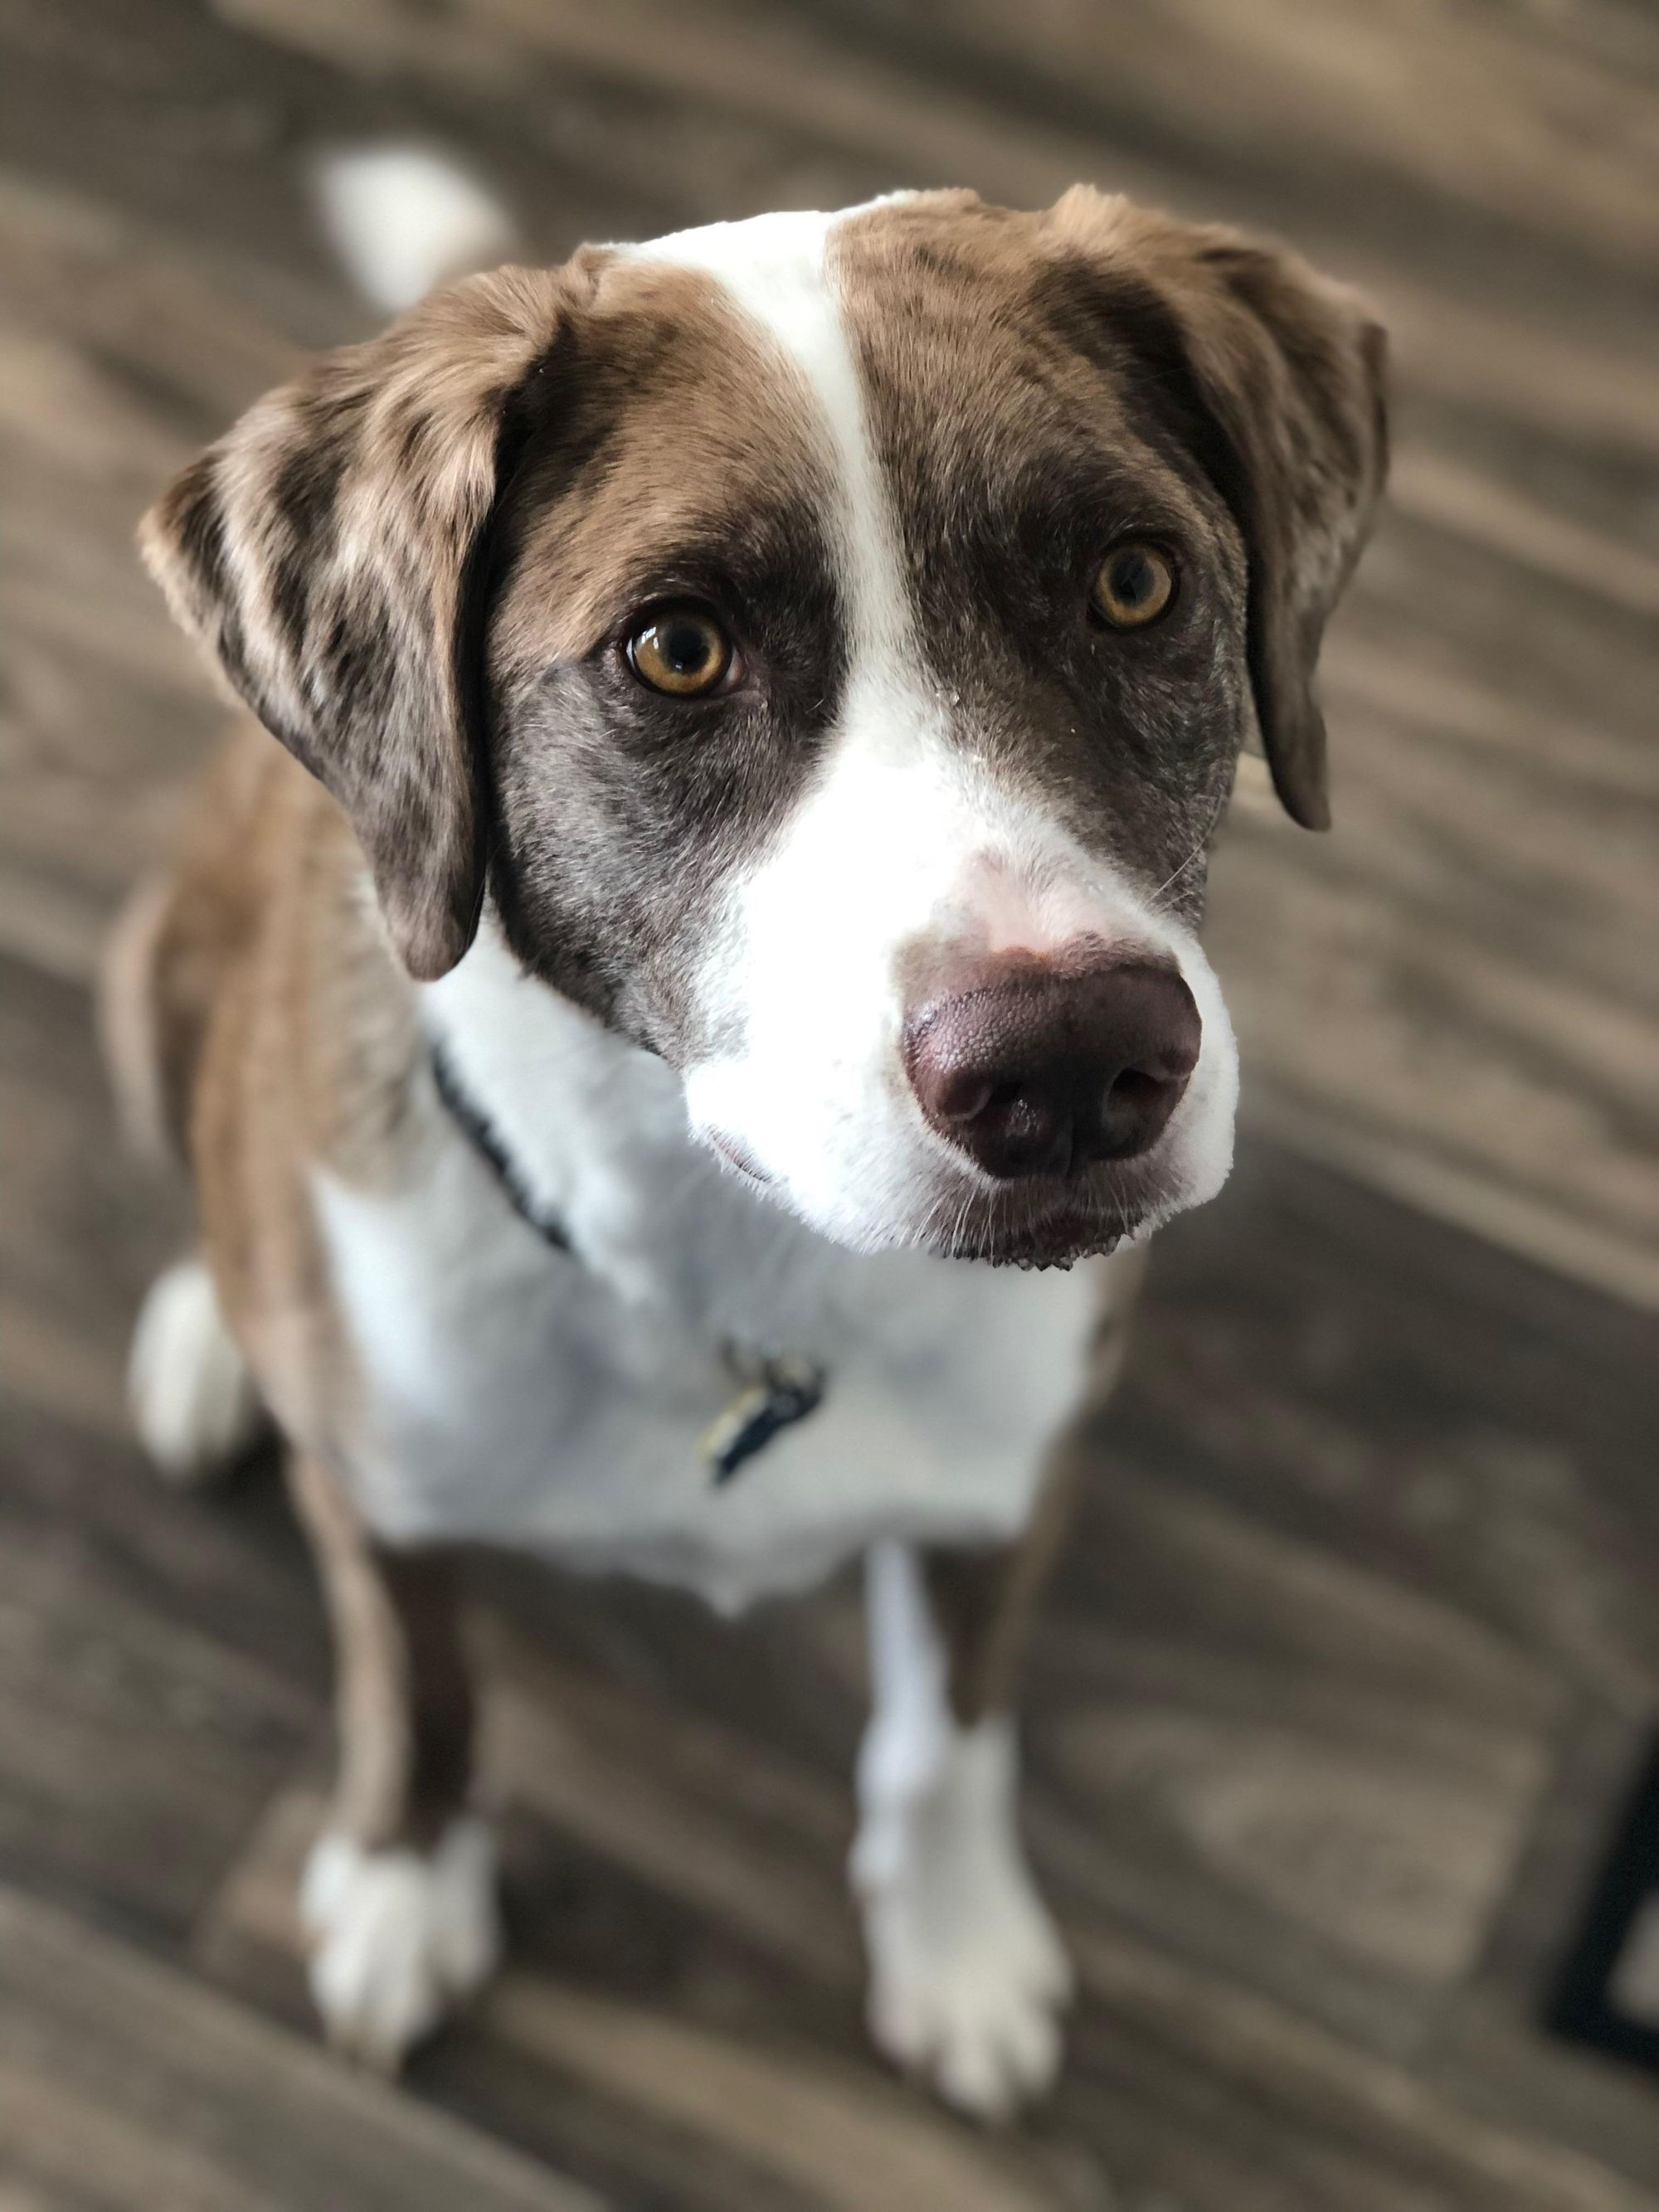 Are Catahoula Lab Mixes Good Dogs?